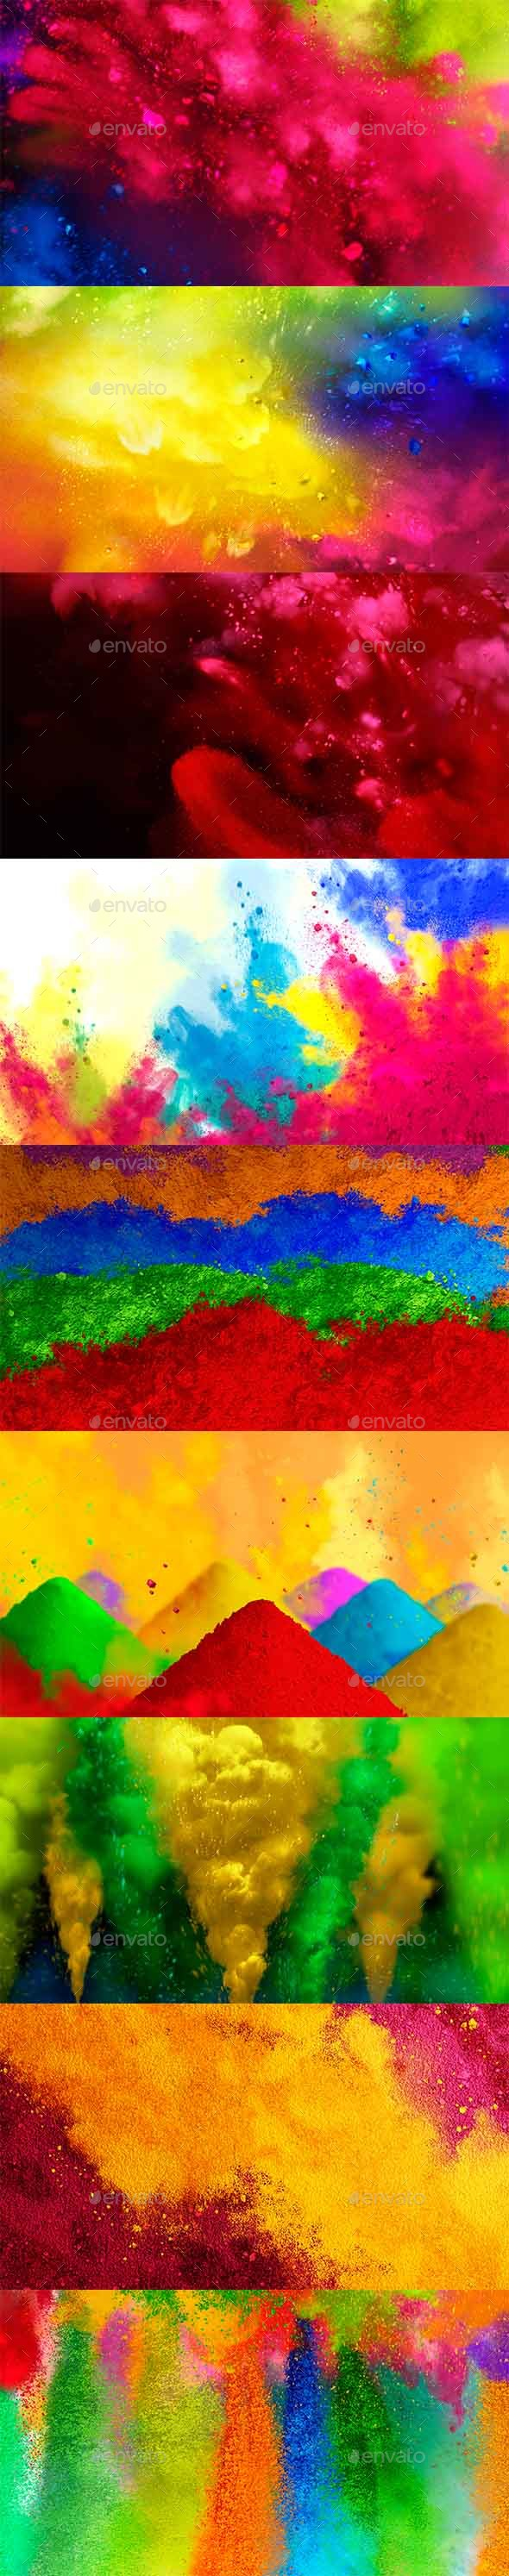 12 Painting Colorful Background